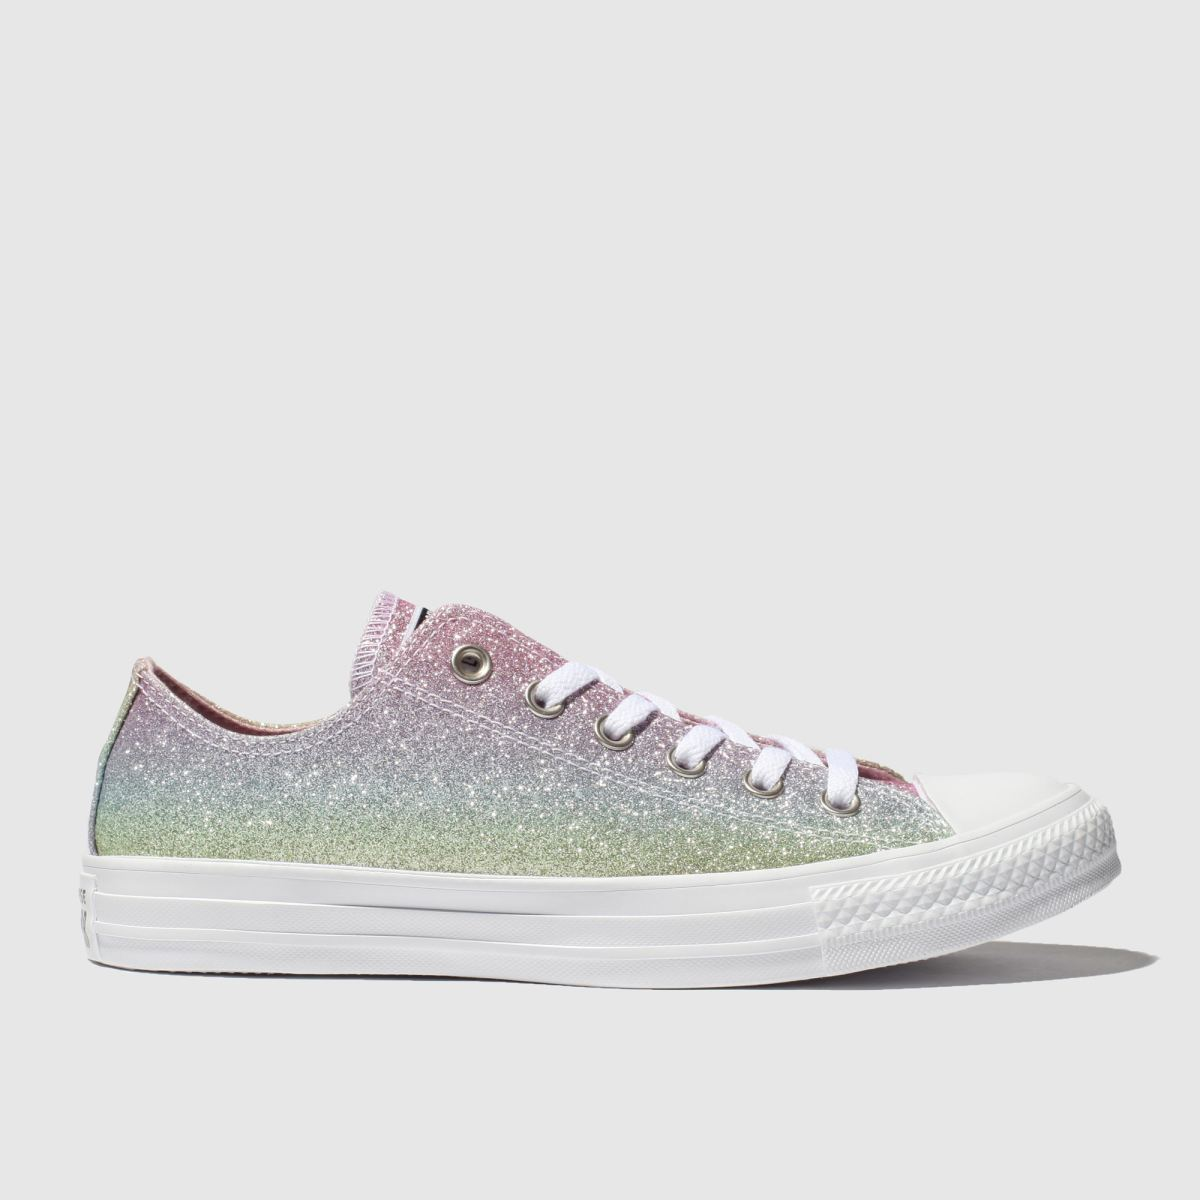 Shopfinity: Search Converse